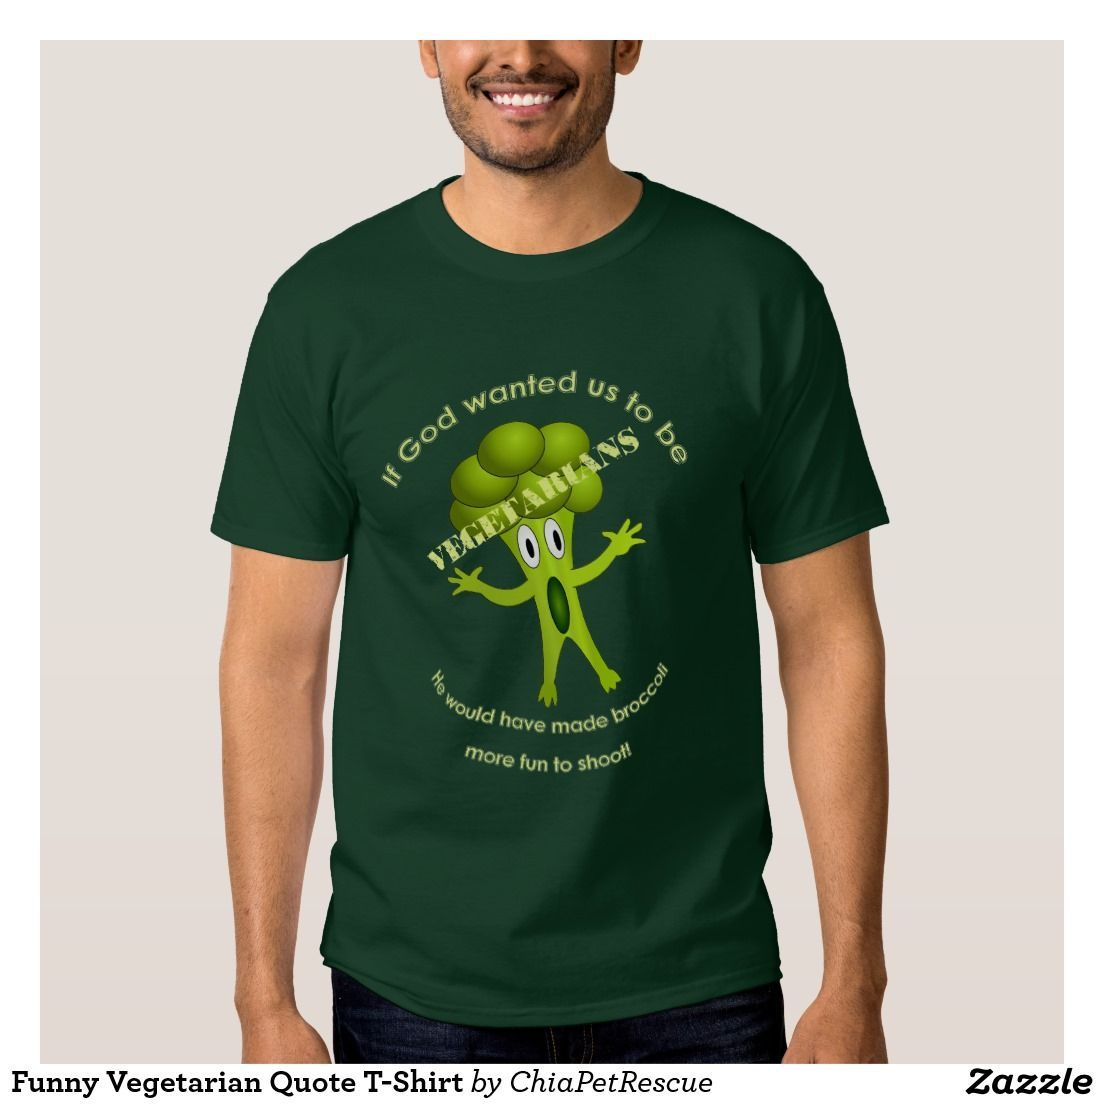 "#vegetarian #tshirt #funny #quoteFunny Vegetarian Quote T-Shirt Funny Vegetarian Quote T-ShirtQuote  ""Just do what makes you happy "" - Avril de Nation   Quotation is the repetition of someone else's statement or thoughts. Quotation marks are punctuation marks used in text to indicate a quotation. Both of these words are sometimes abbreviated as quote(s). #vegetarianquotes"